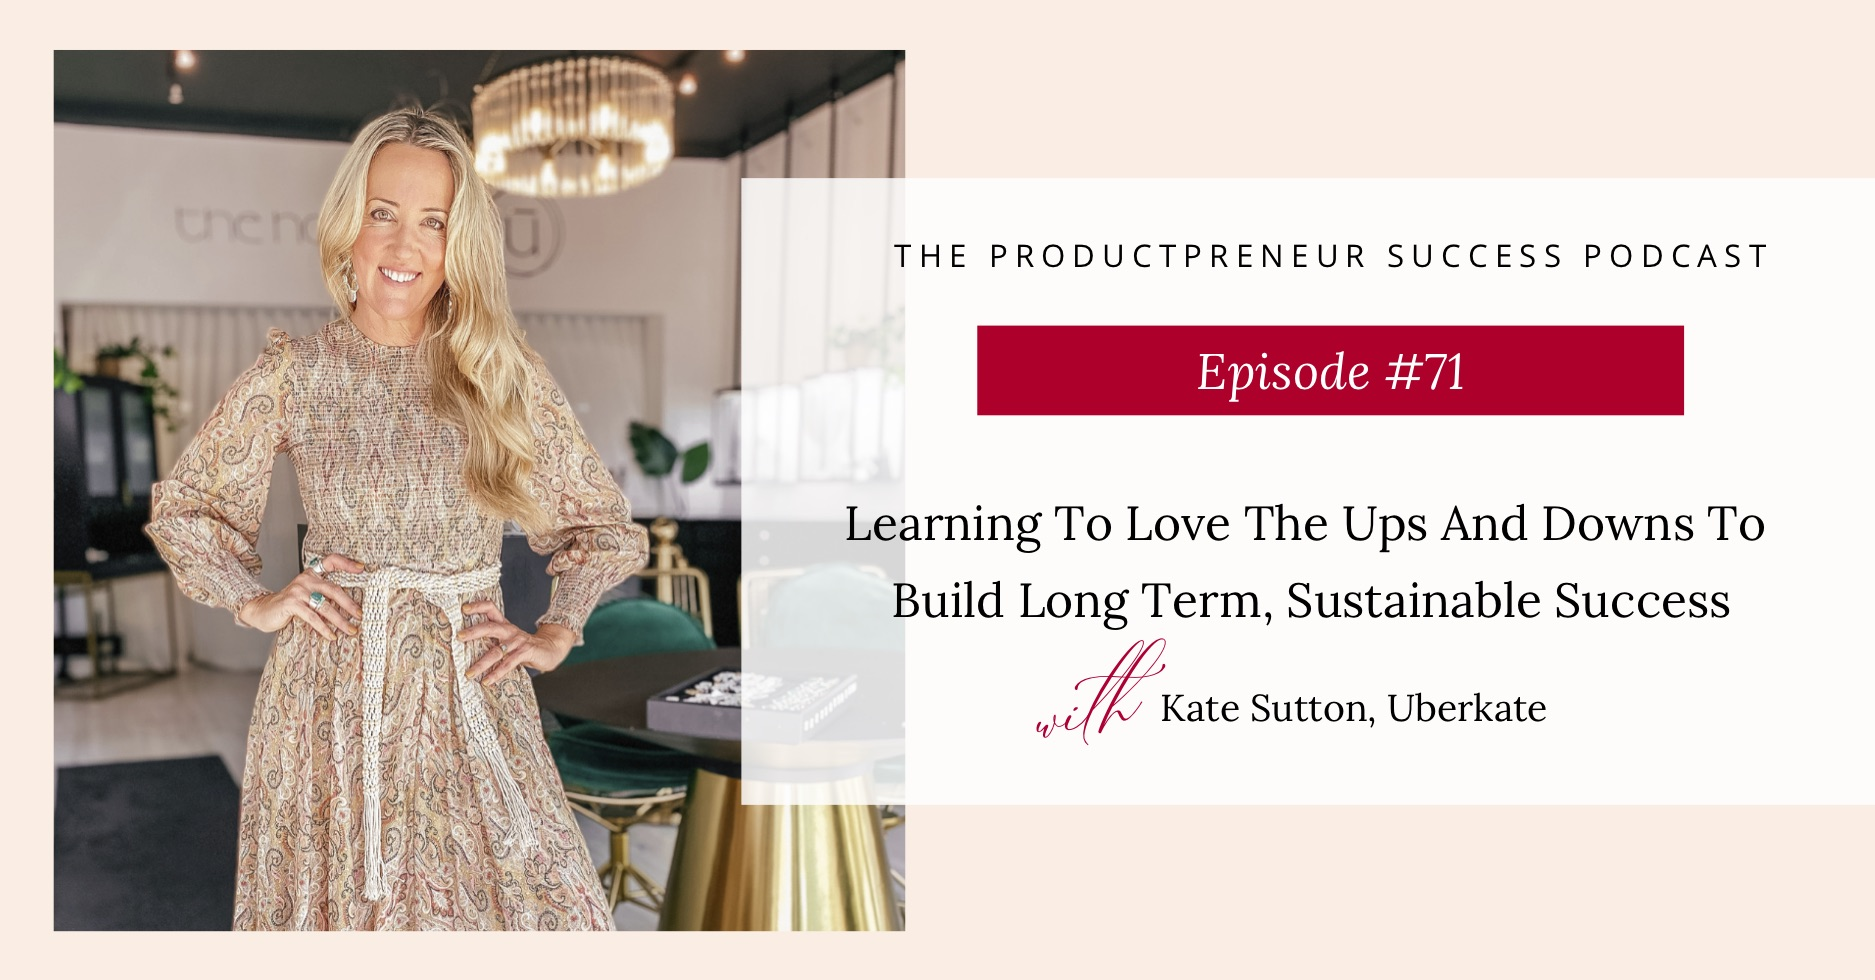 Podcast Episode Graphic with title Learning to Love the Ups and Downs to Build A Long Term Sustainable Business